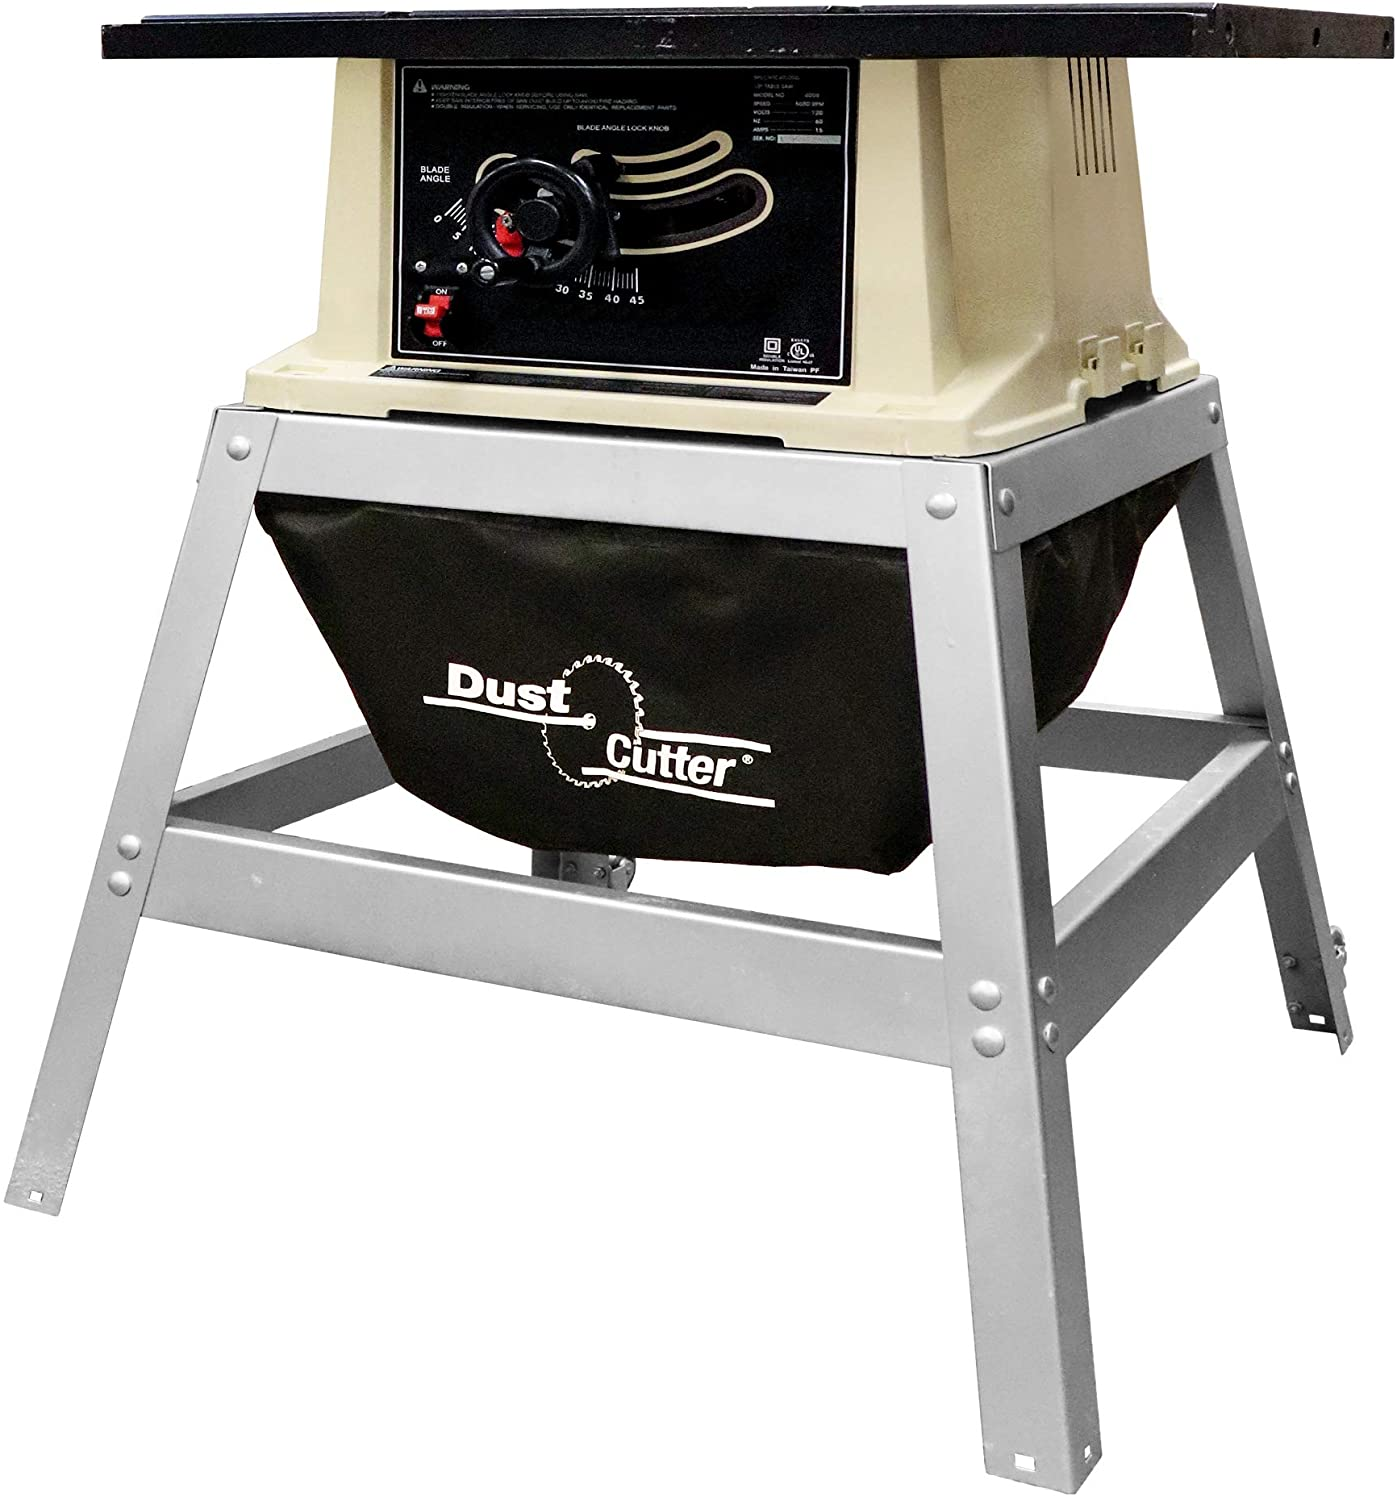 Milescraft 1500 DustCutter - Contractor Saw Dust Collection System